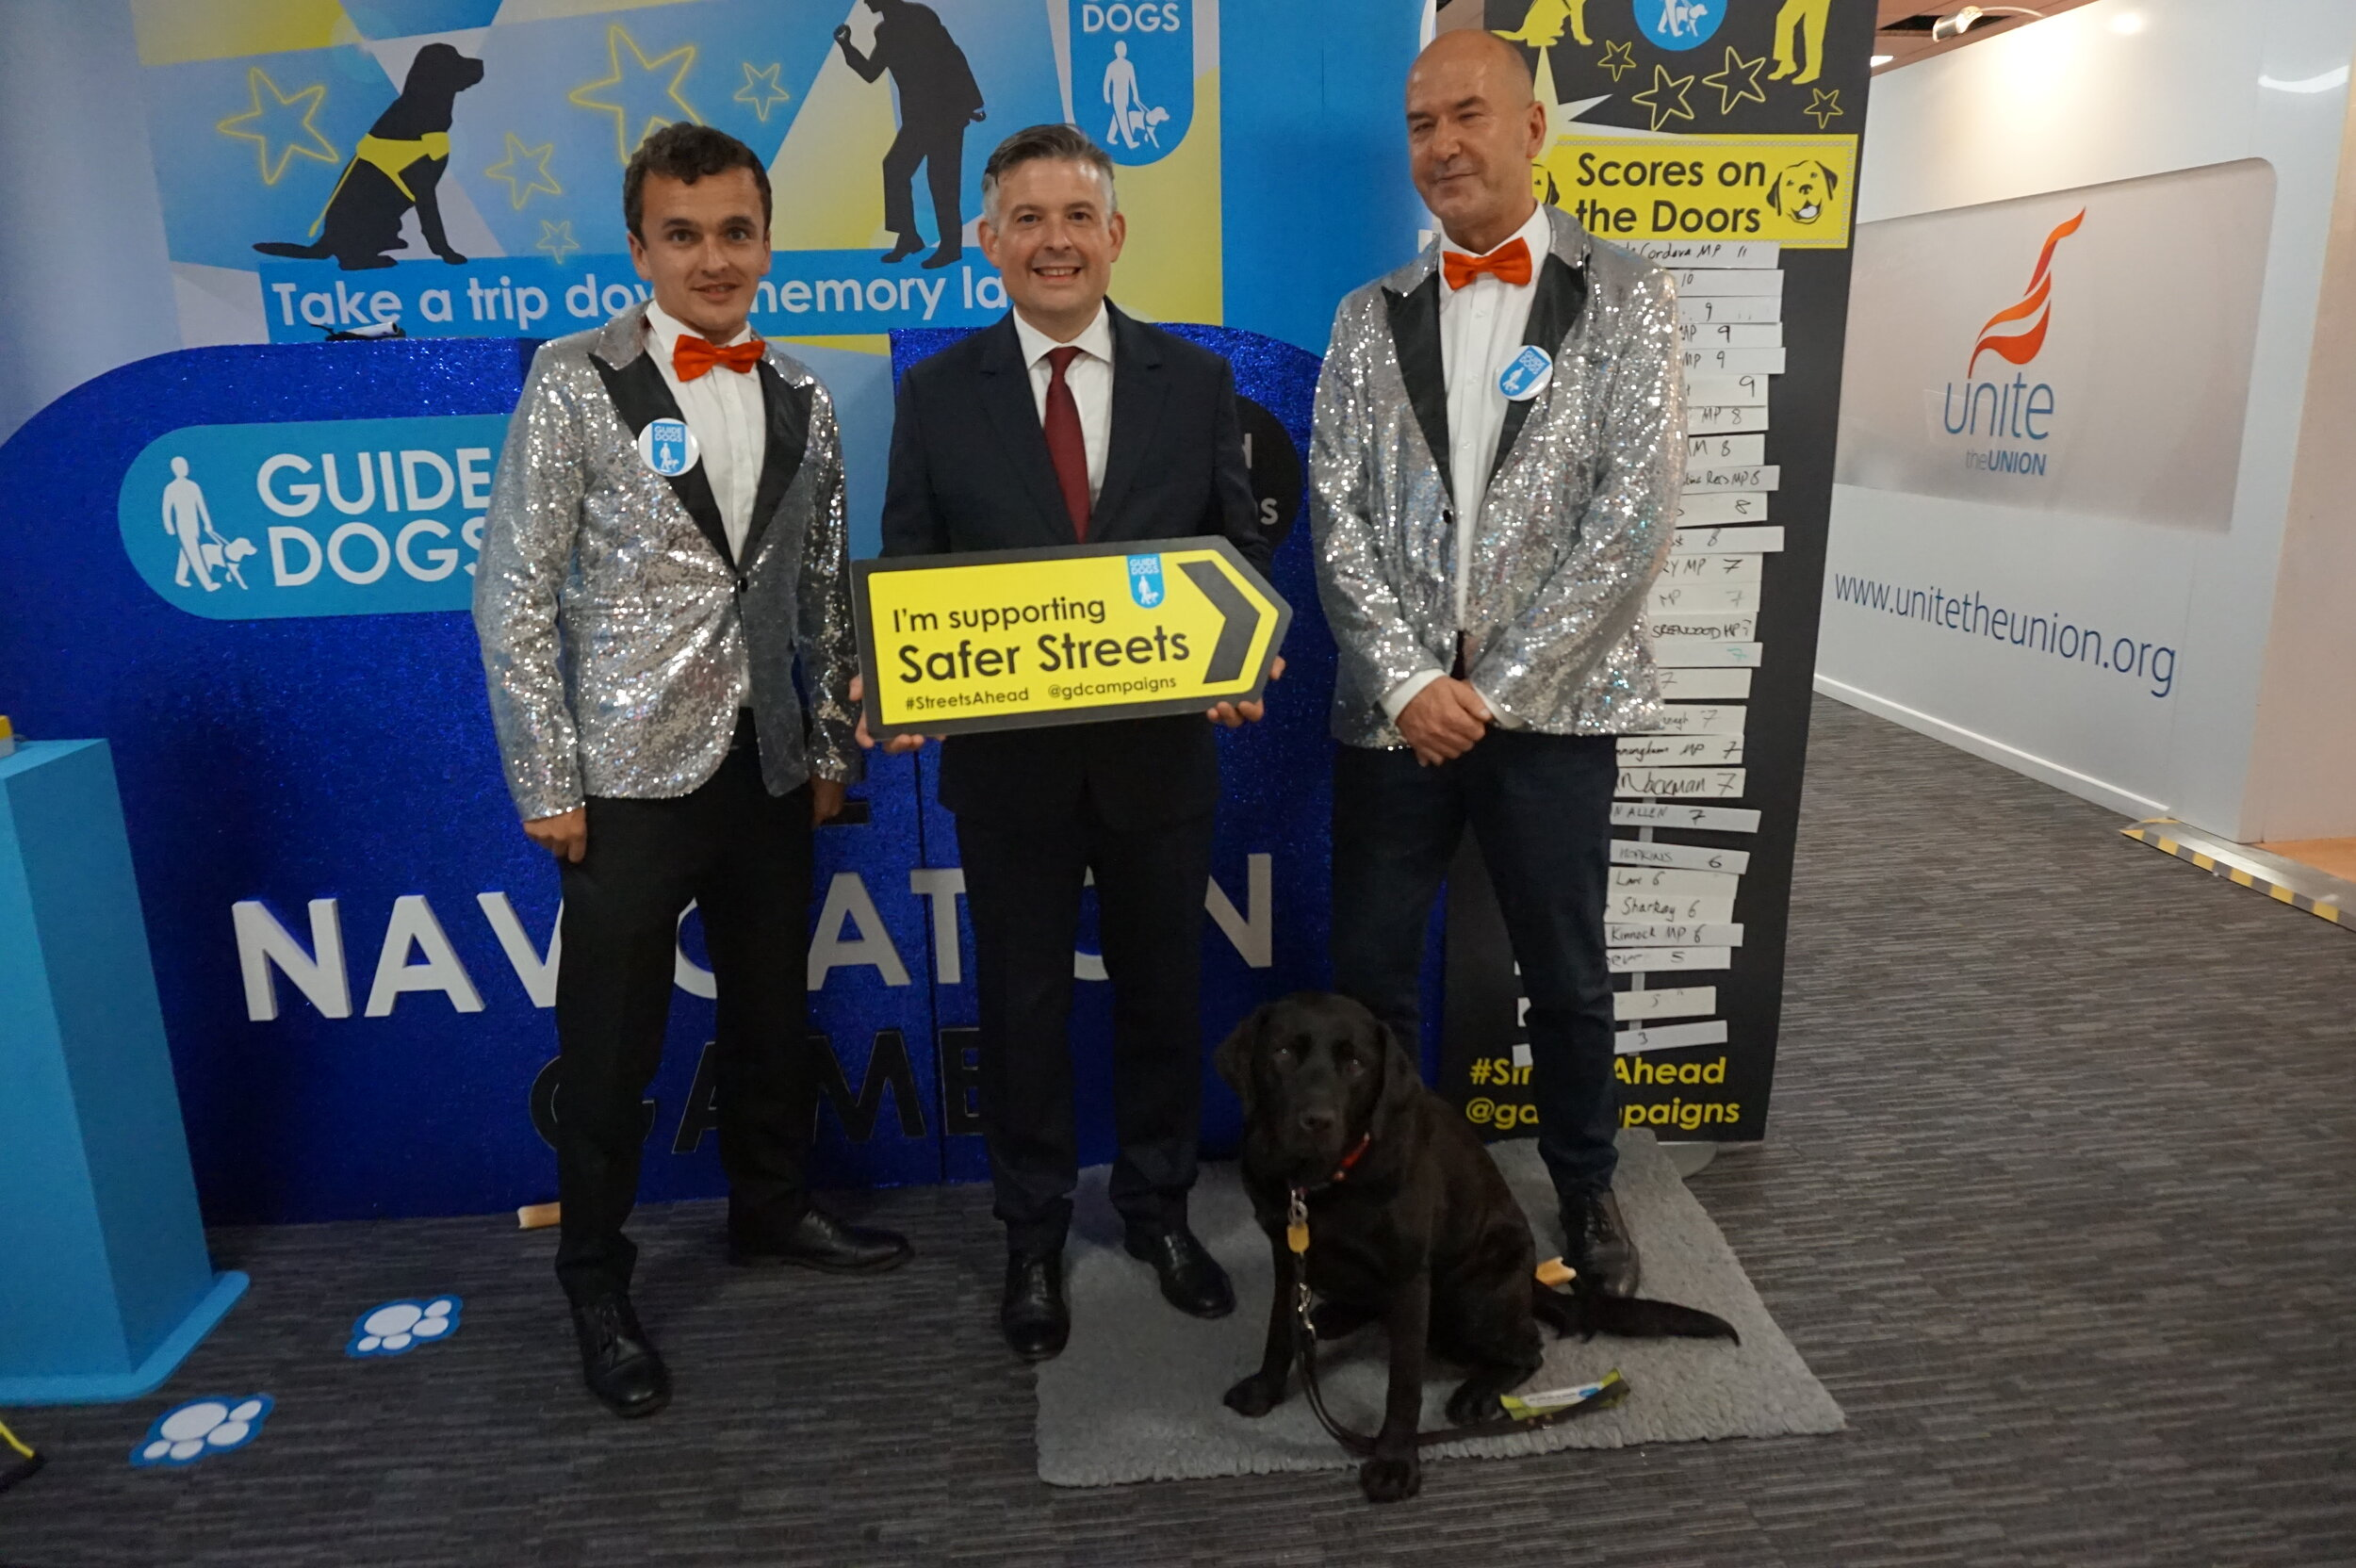 Jon visiting the Guide Dogs stand at this year's Labour Party Conference - Monday September 23 2019